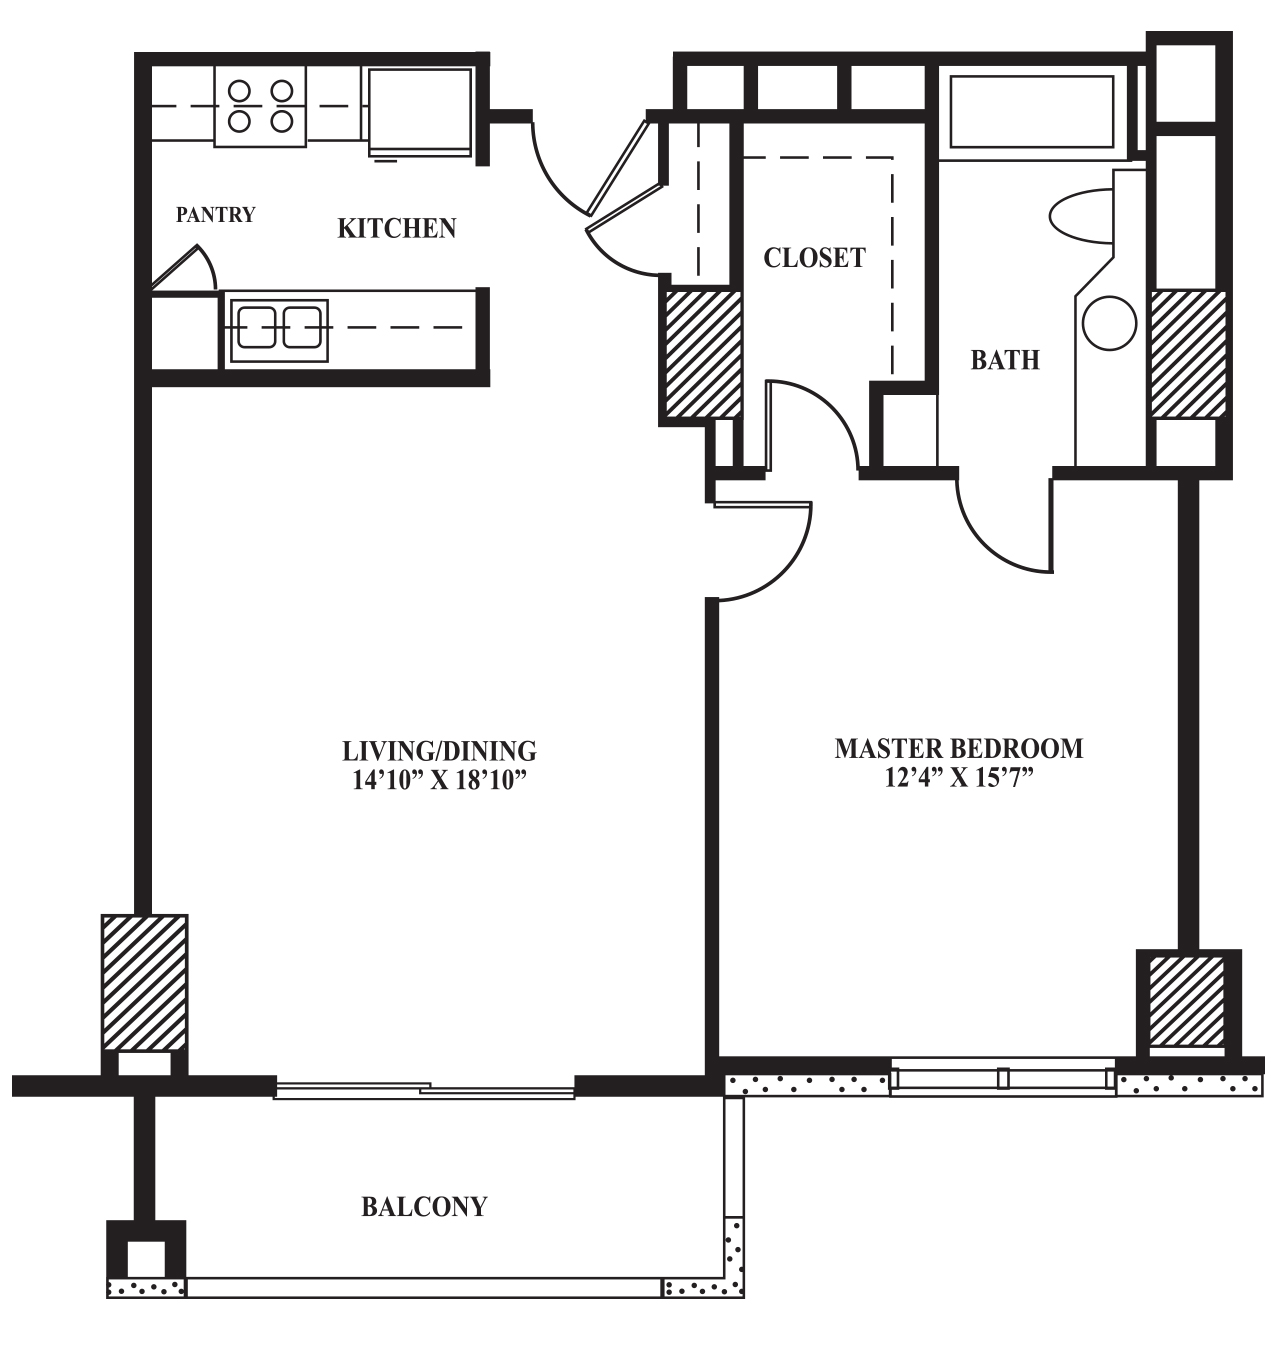 Floor Plan B 742 Sq Ft The Towers On Park Lane